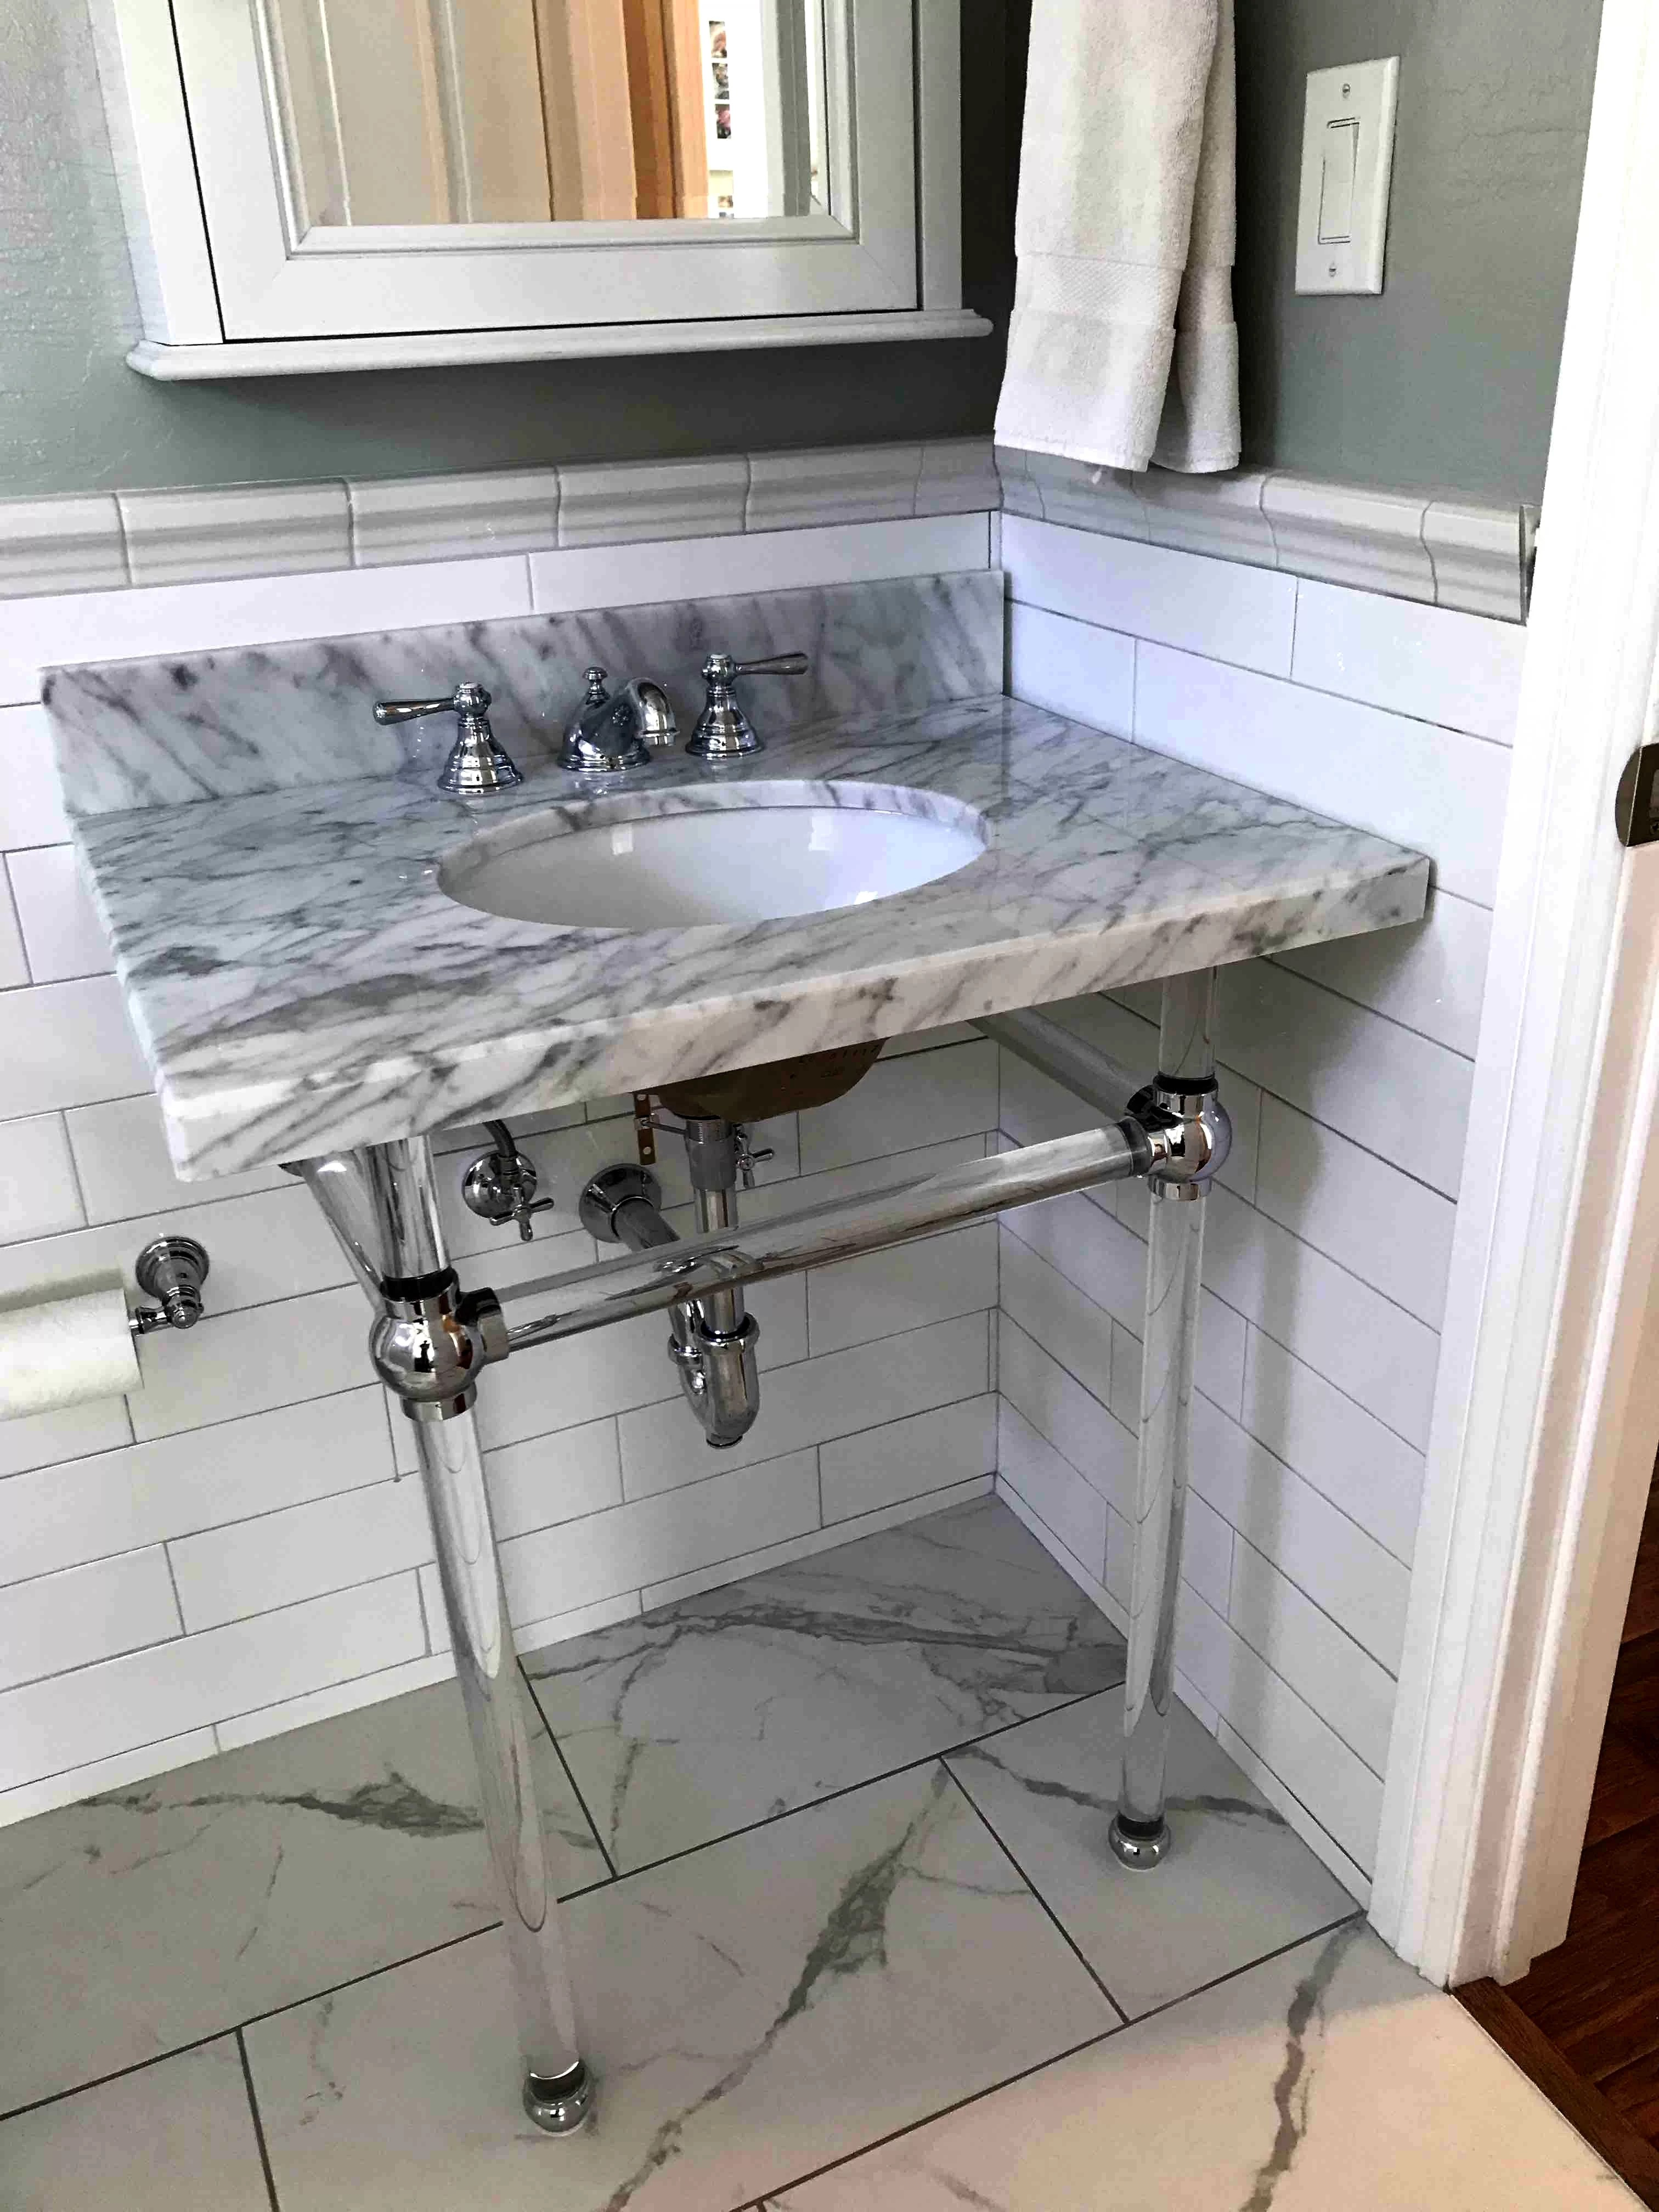 templeton 33 tall oval console bathroom sink with overflow